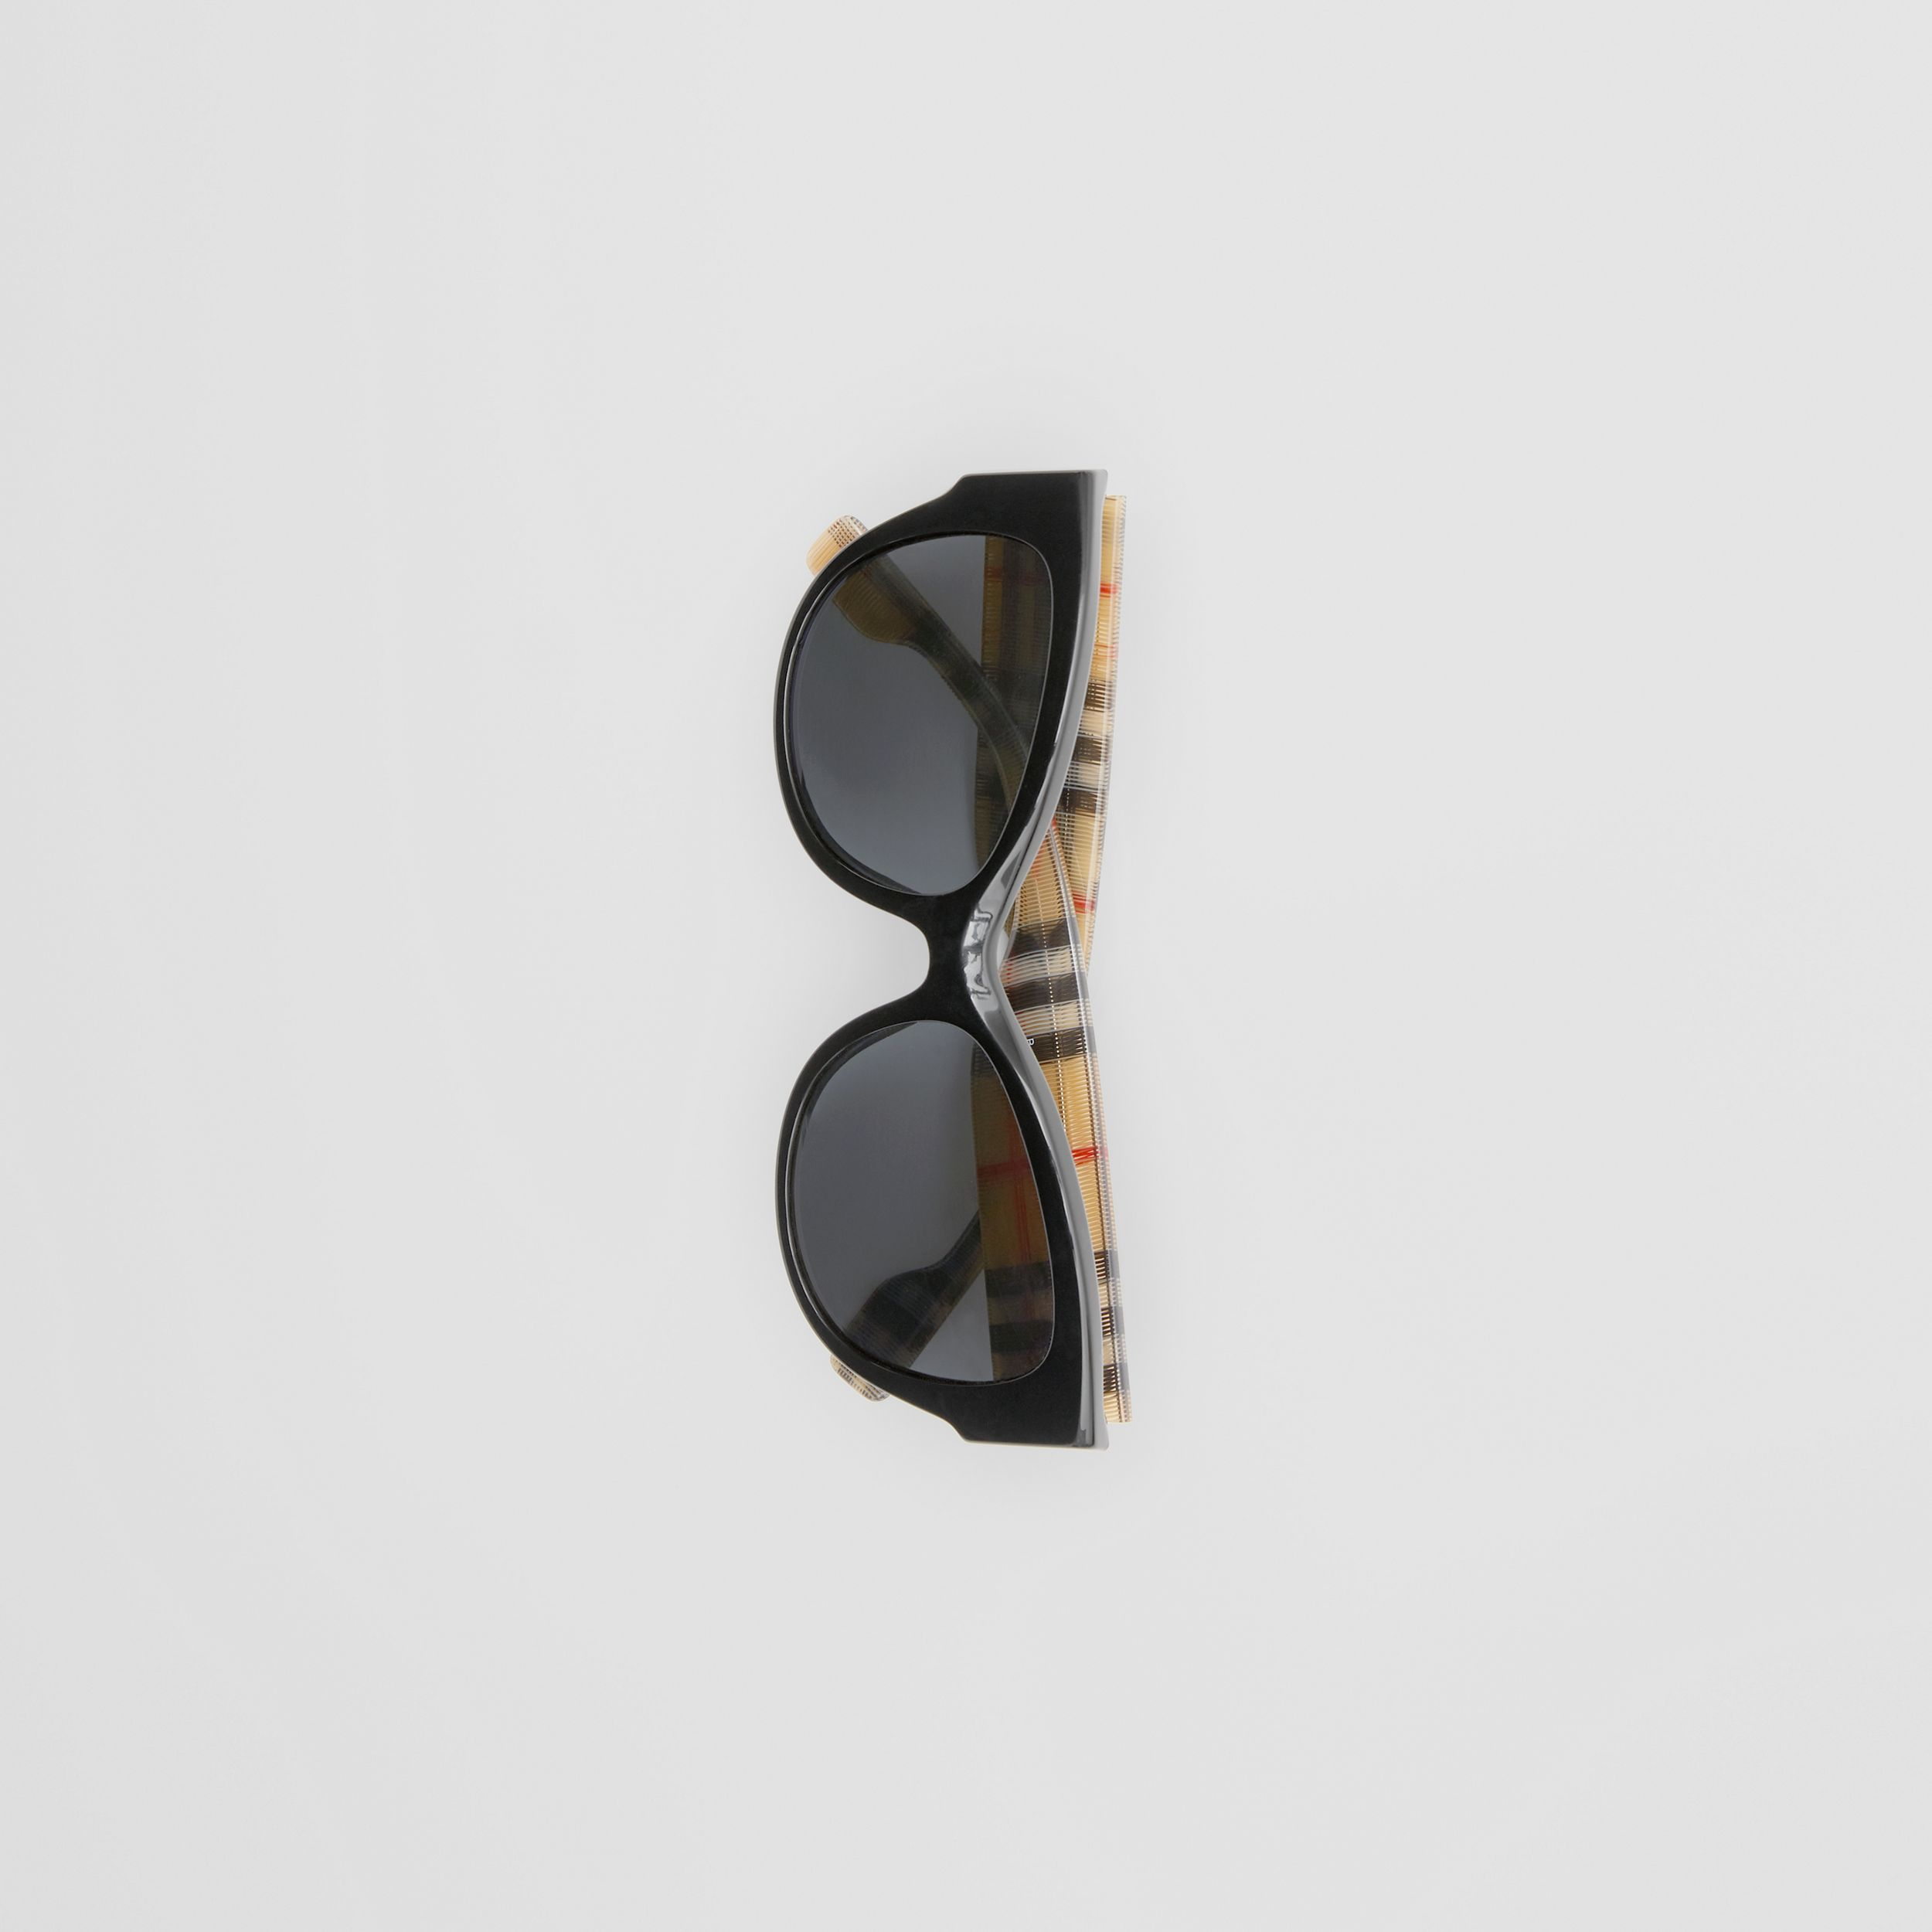 Vintage Check Detail Butterfly Frame Sunglasses in Black / Beige - Women | Burberry - 4